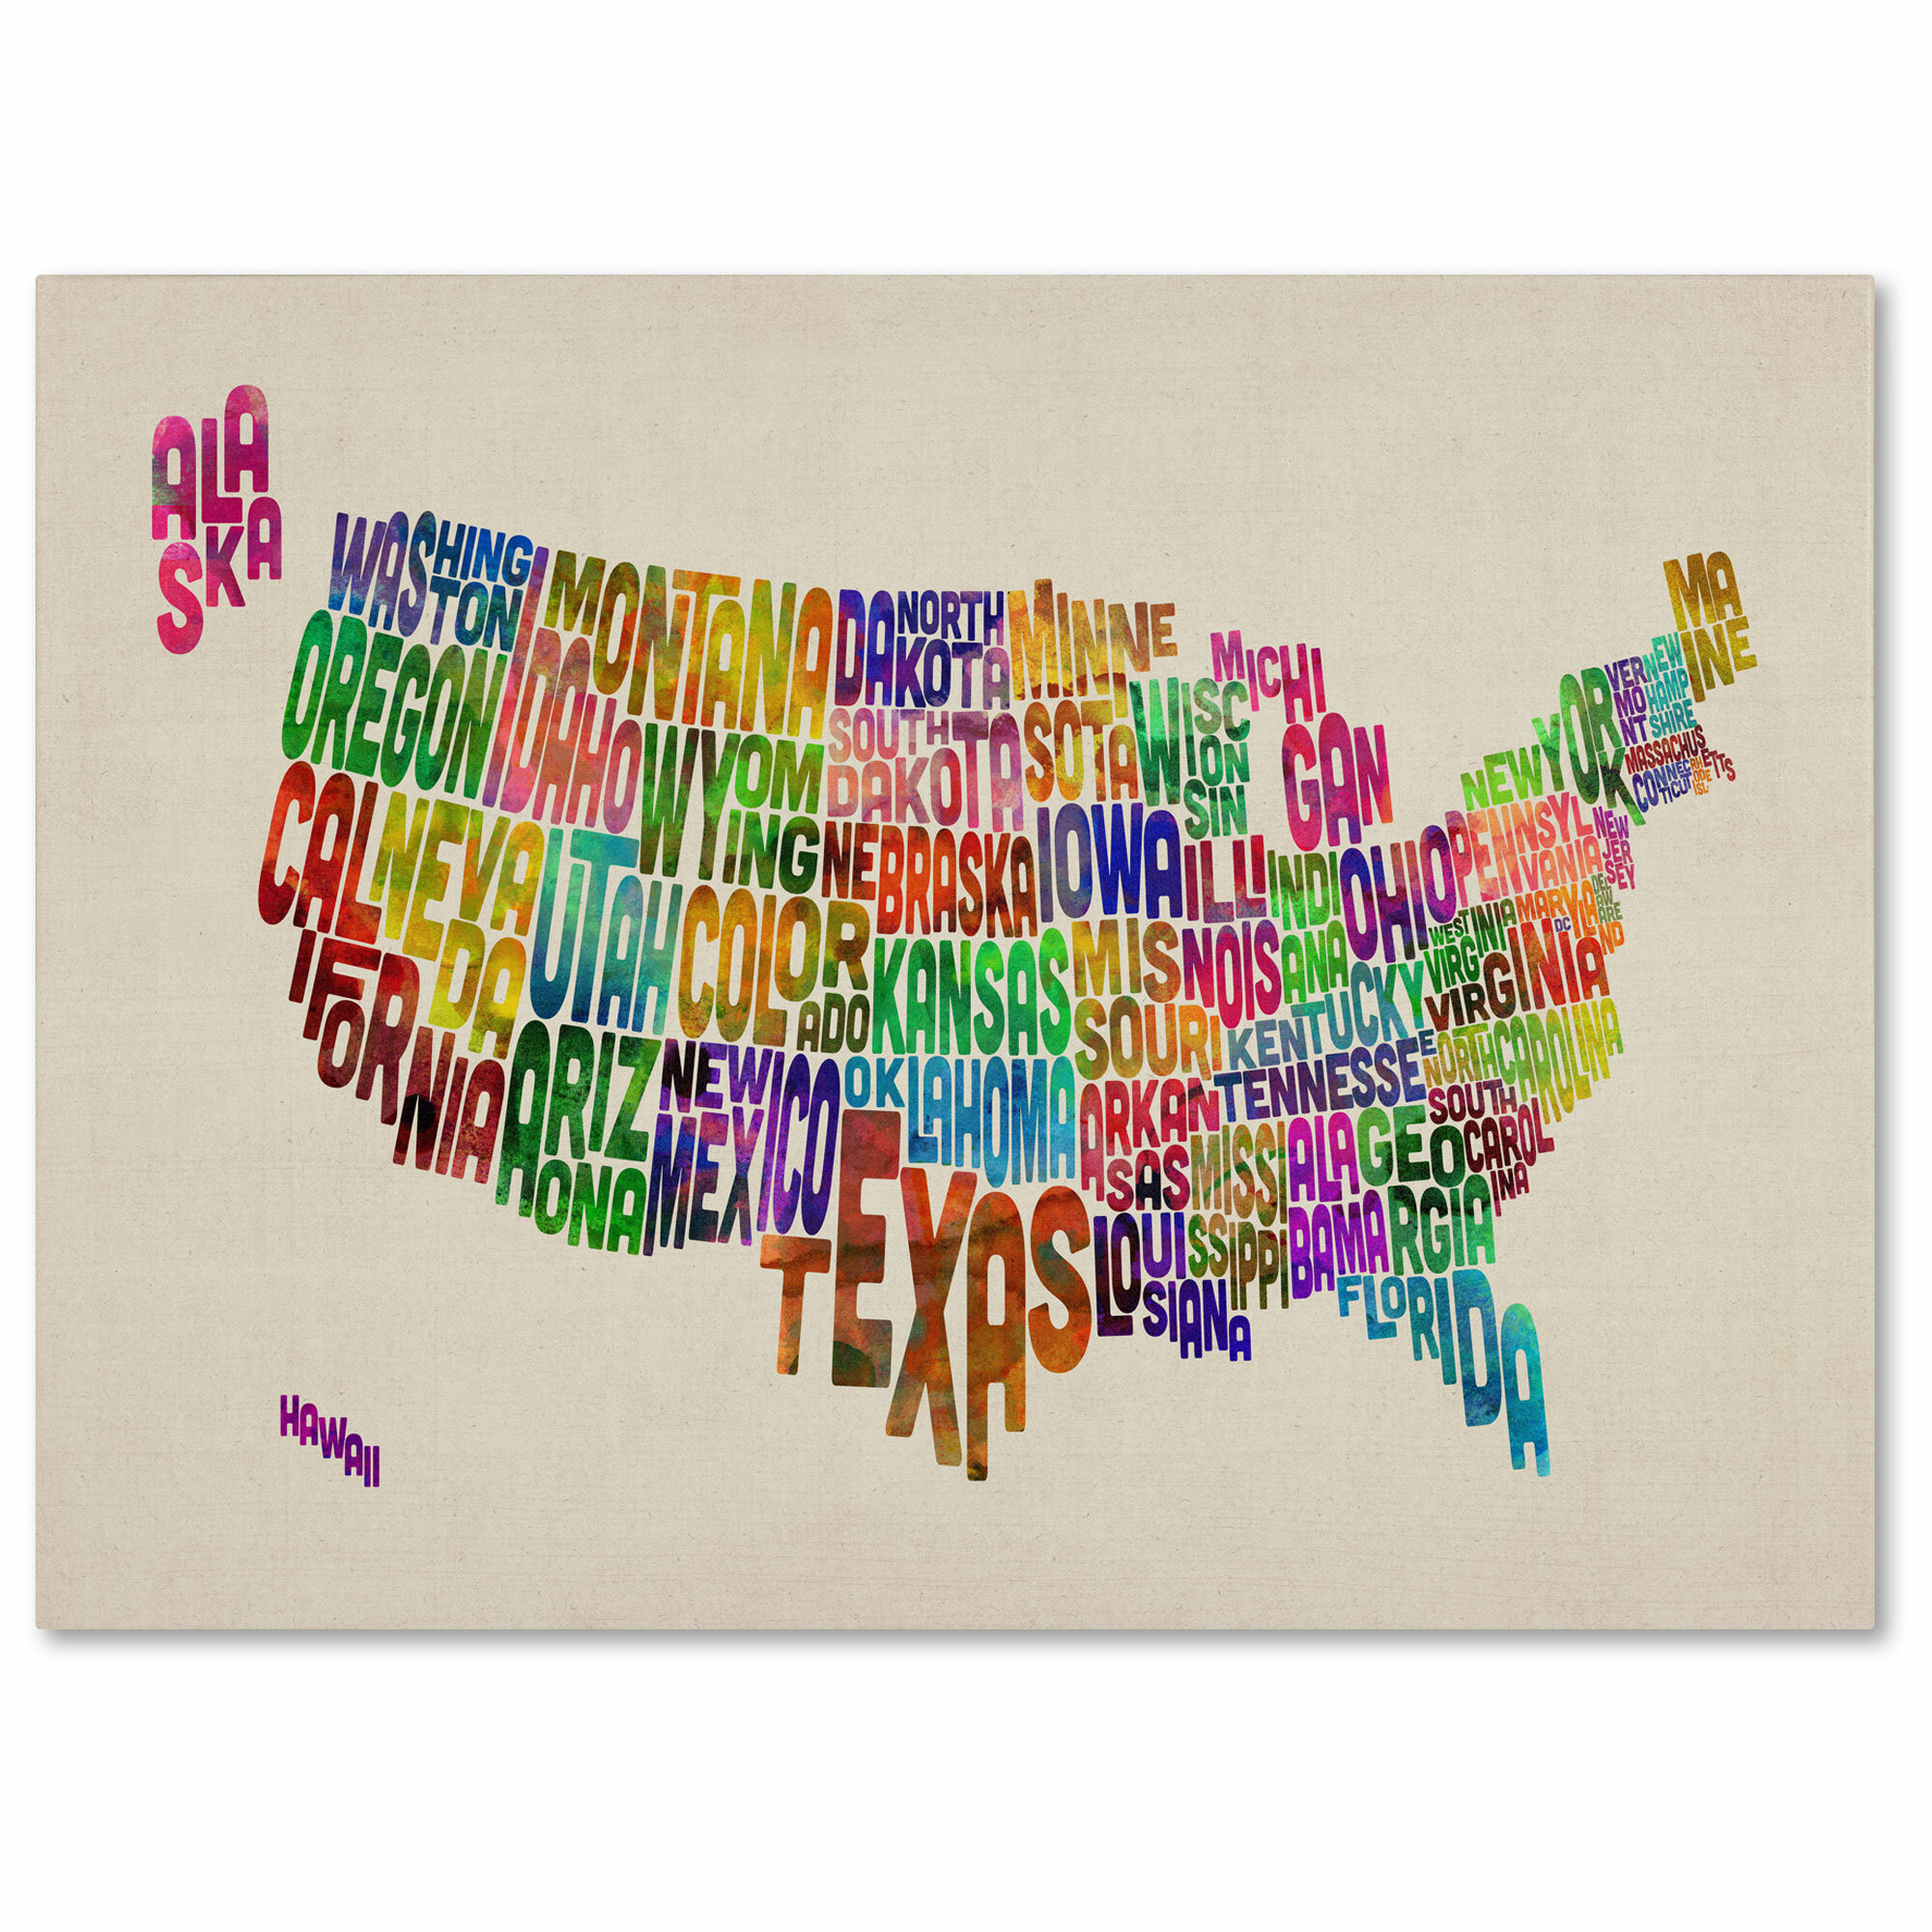 Trademark Art Usa States Text Map By Michael Thompsett Framed Textual Art On Wrapped Canvas Reviews Wayfair